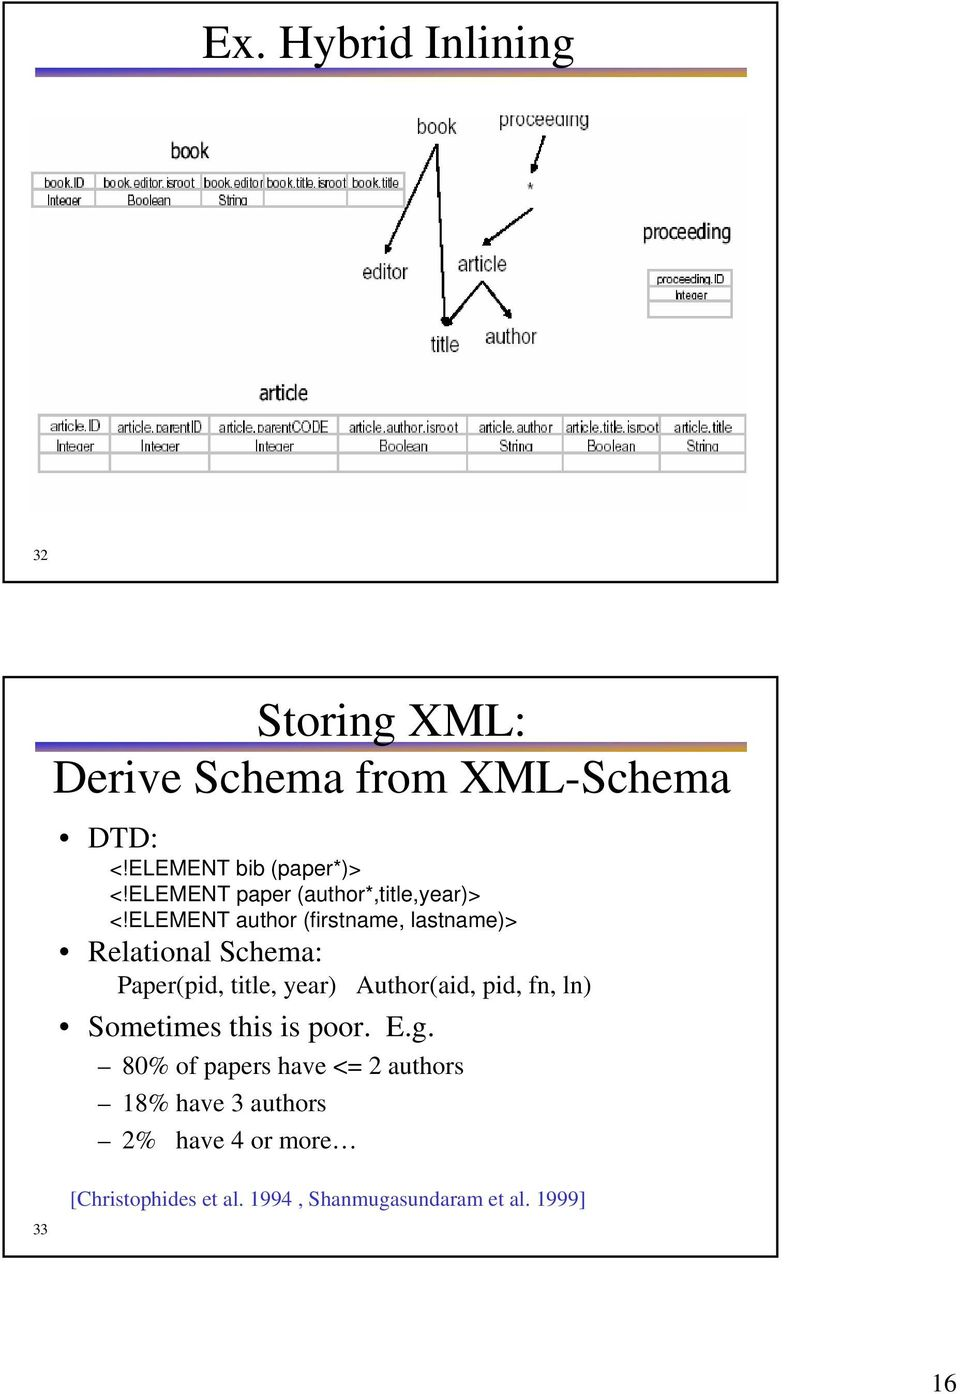 ELEMENT author (firstname, lastname)> Relational Schema: Paper(pid, title, year) Author(aid, pid,